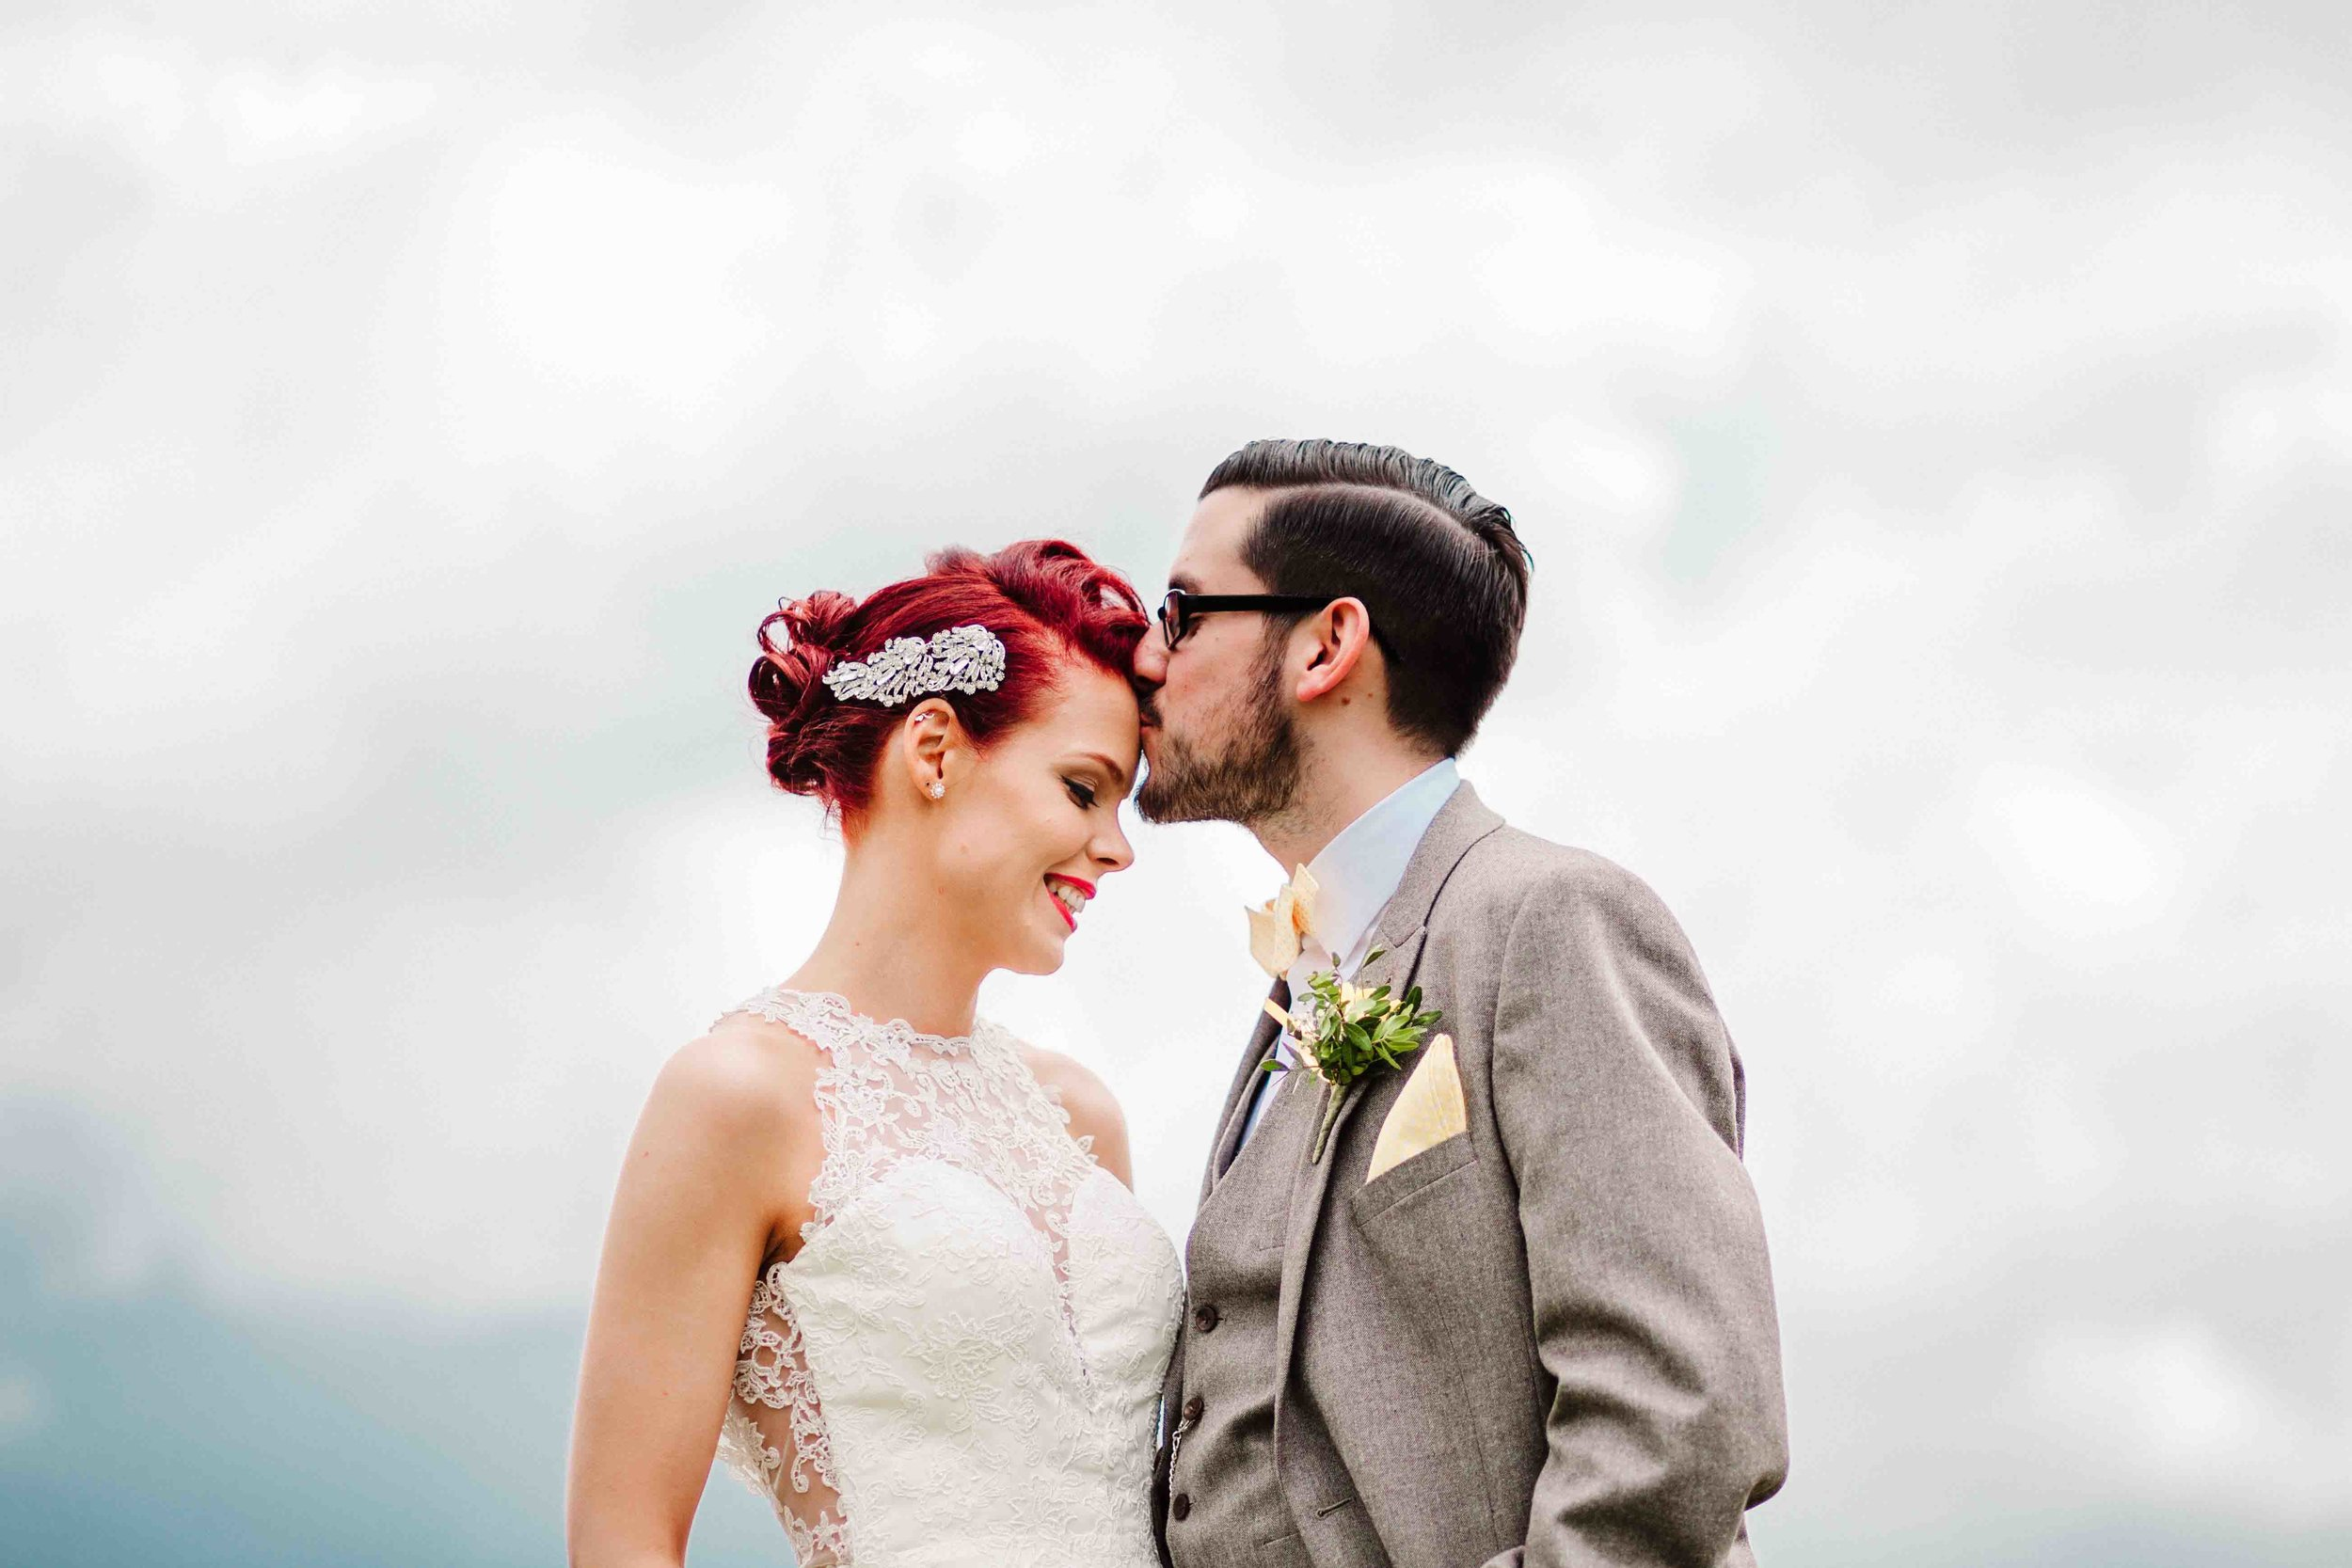 A groom kissing his bride on the forehead